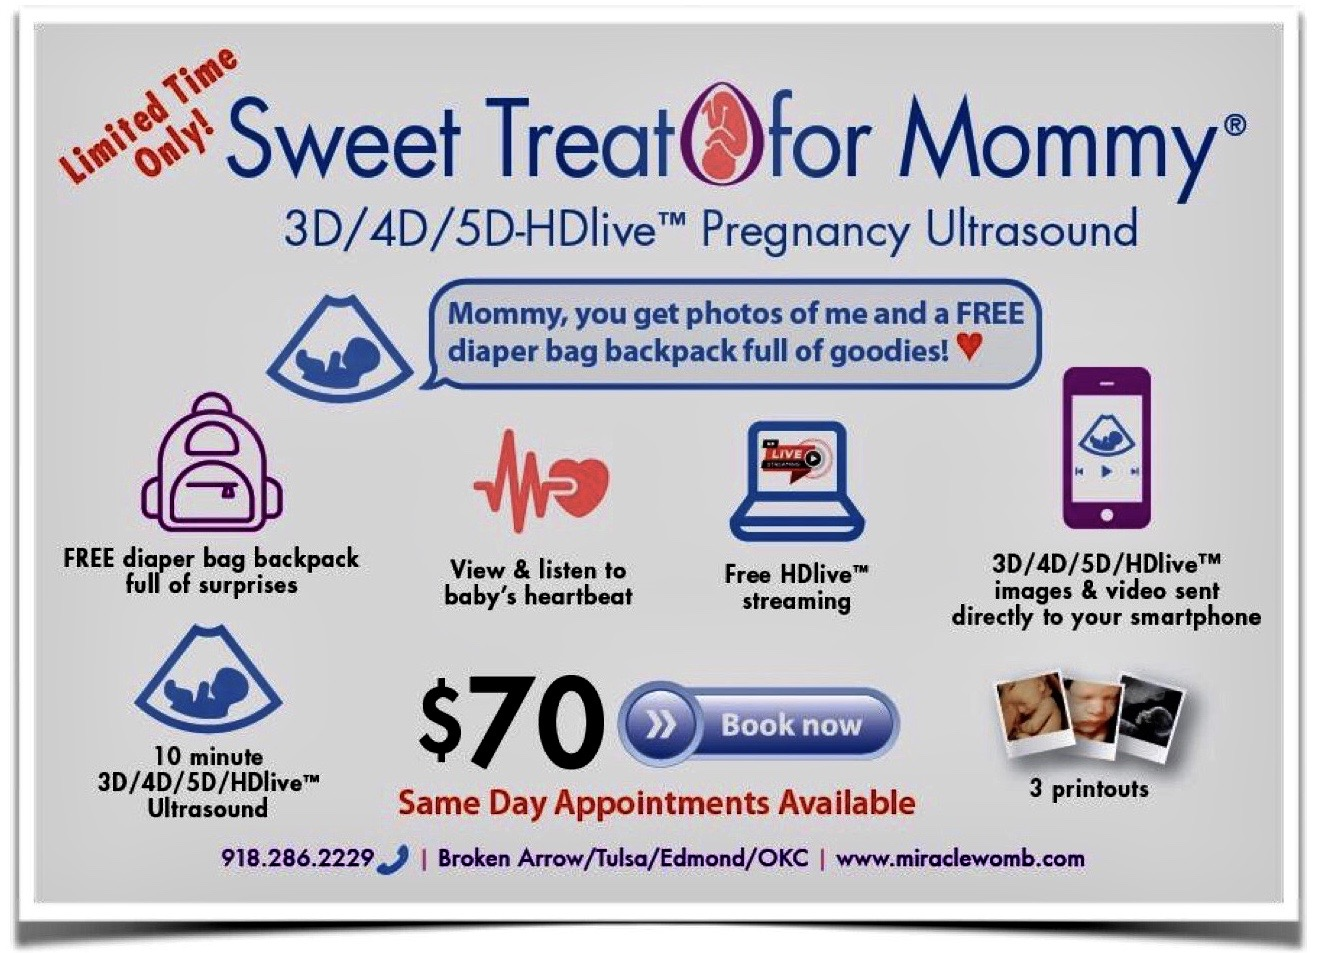 3d 4d 5d HD Elective Pregnancy sweet treat for mommy Ultrasound